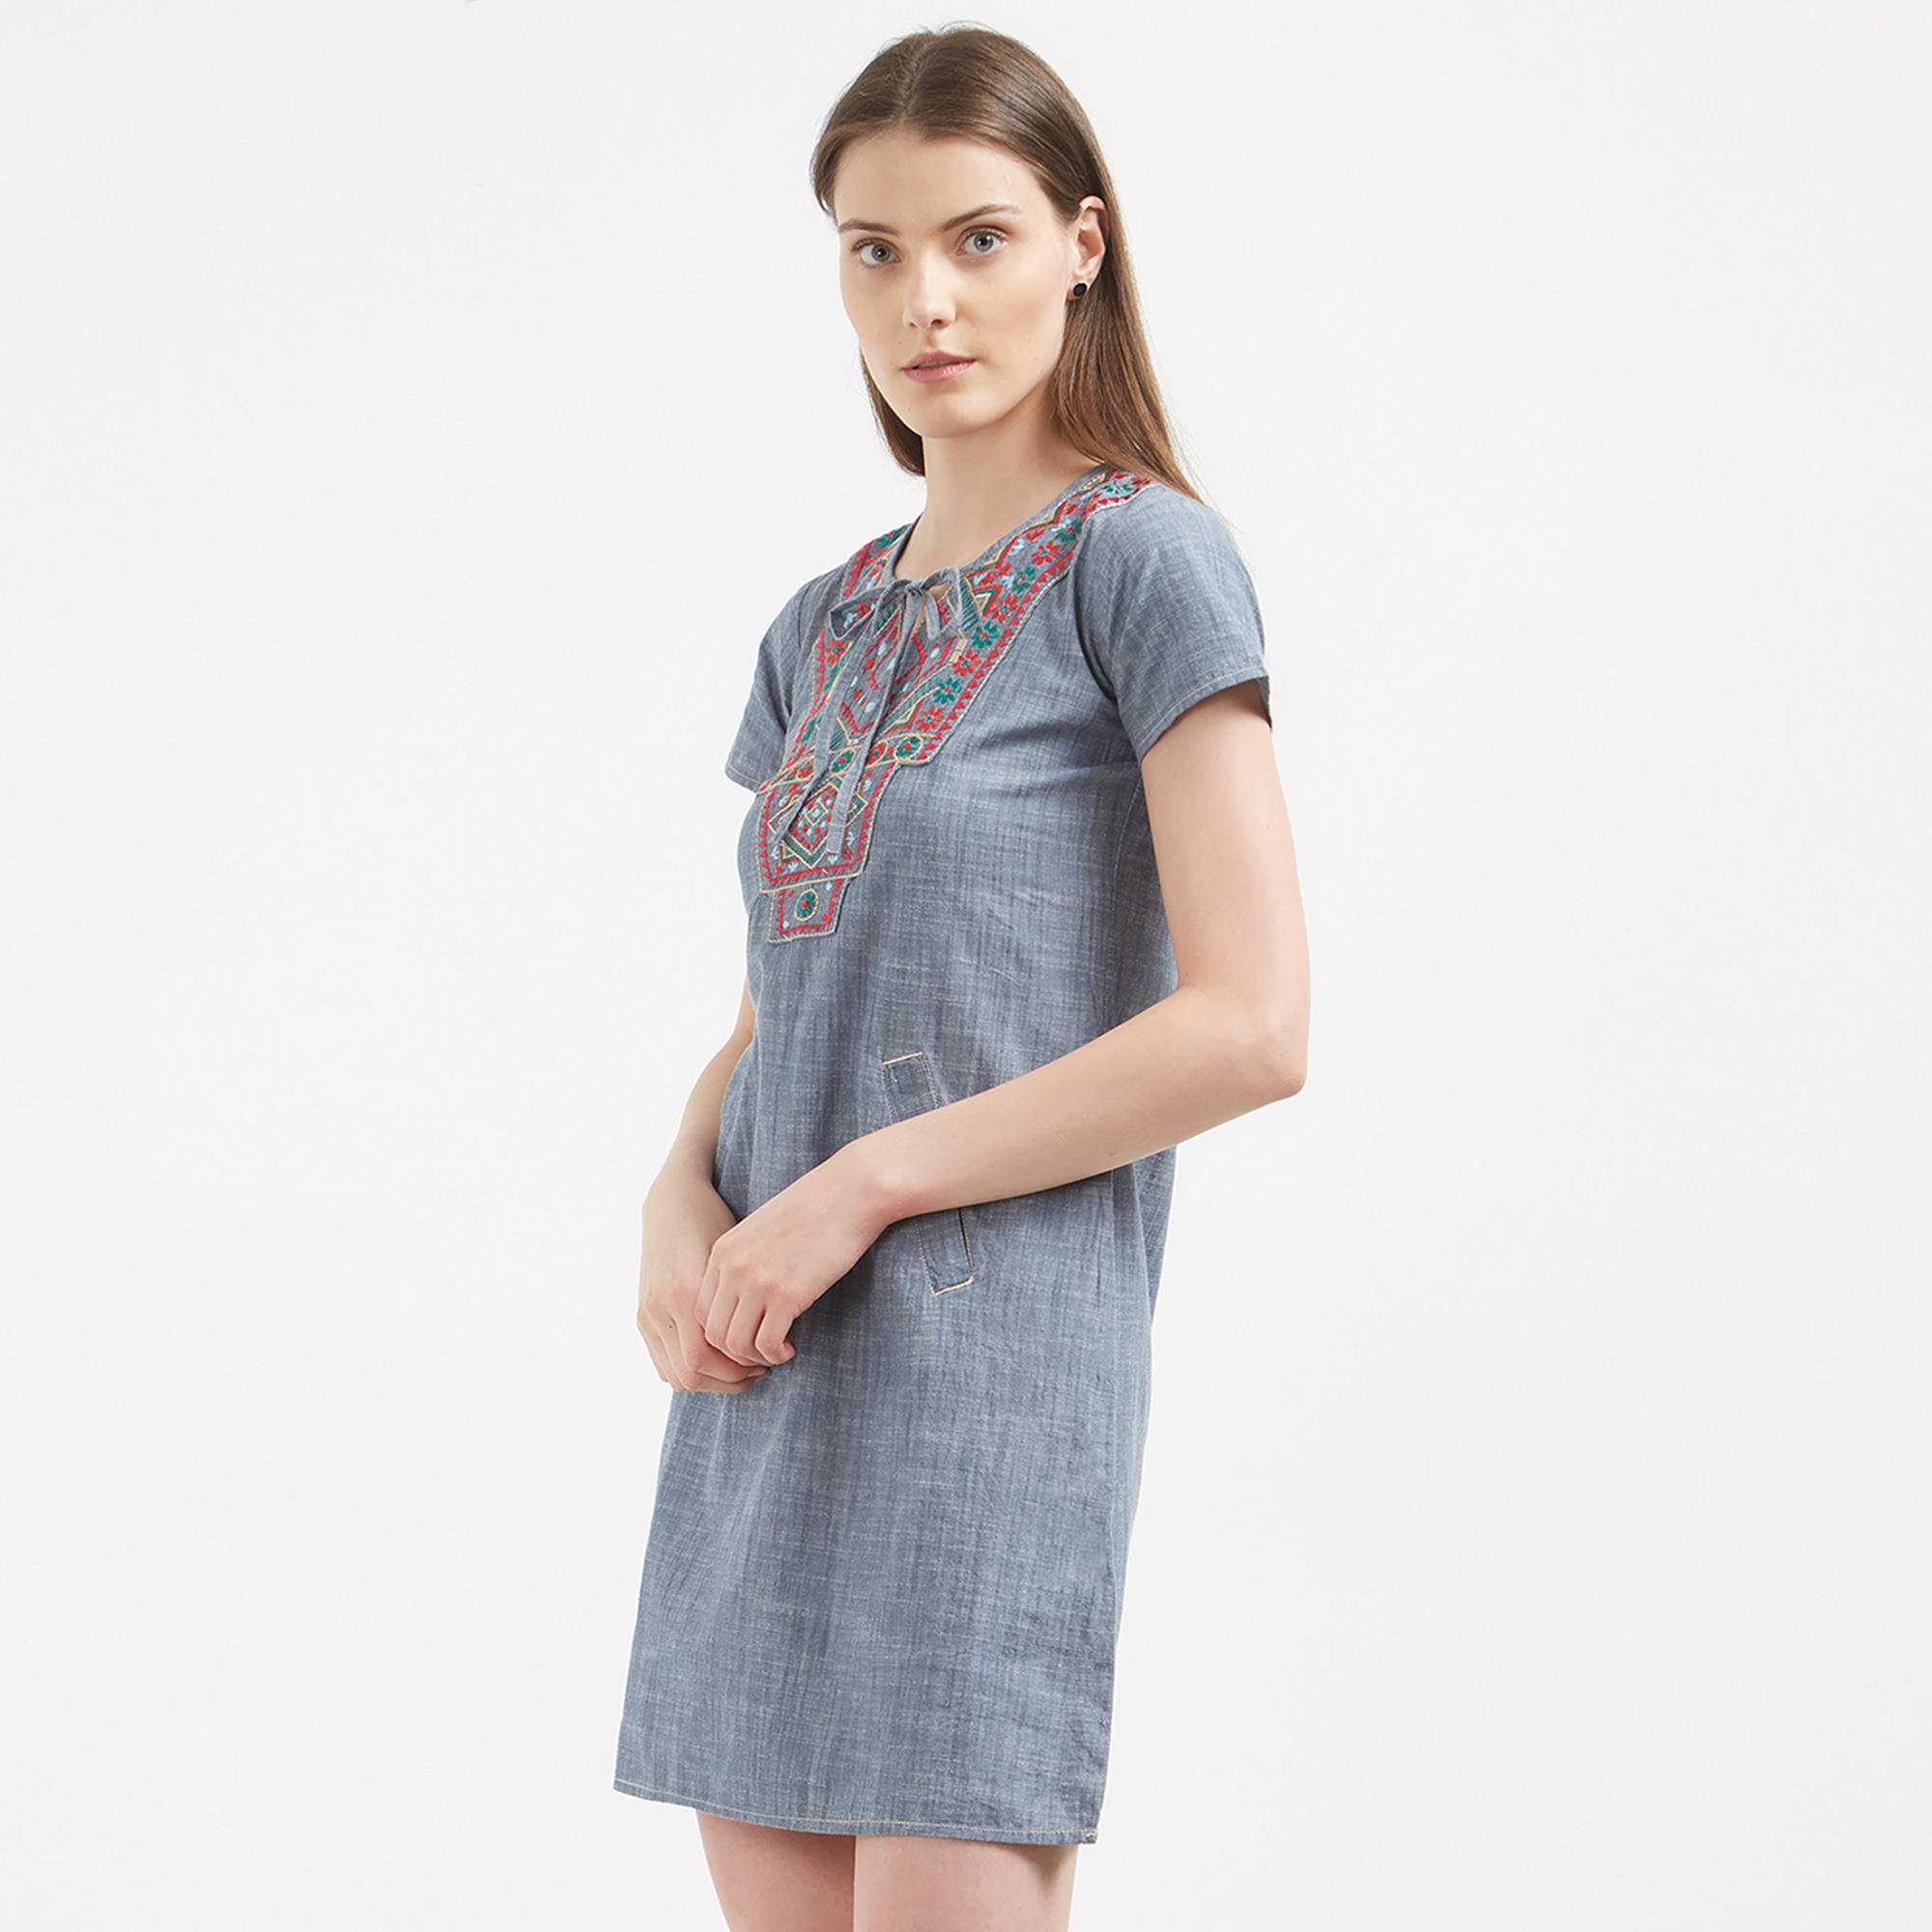 Charming Blue Colored Casual Wear Cotton Western Dress